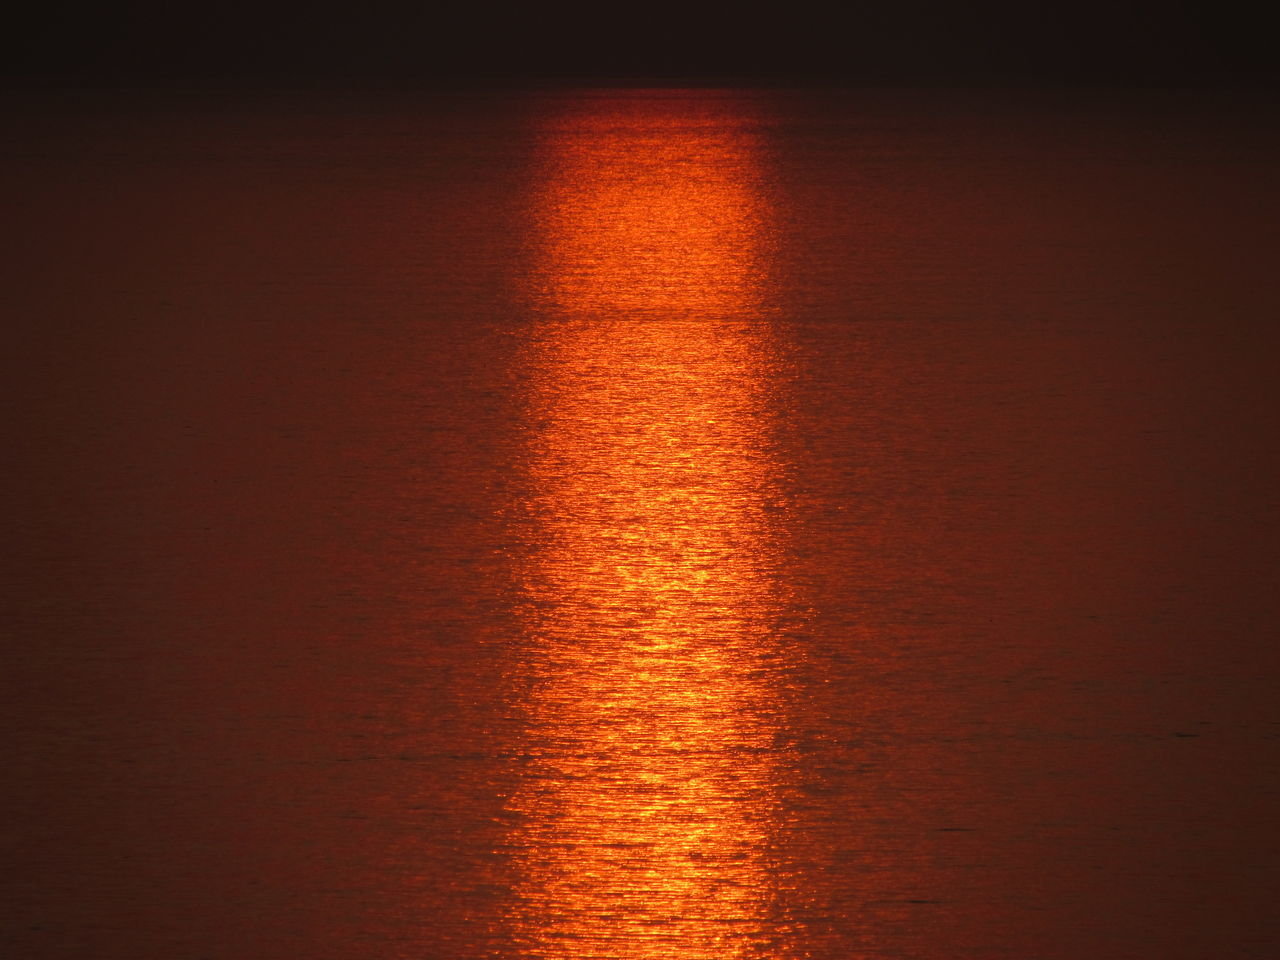 Calm Gemlik Mystery Phosphorescence Red Sea Seascape Shiny Wave